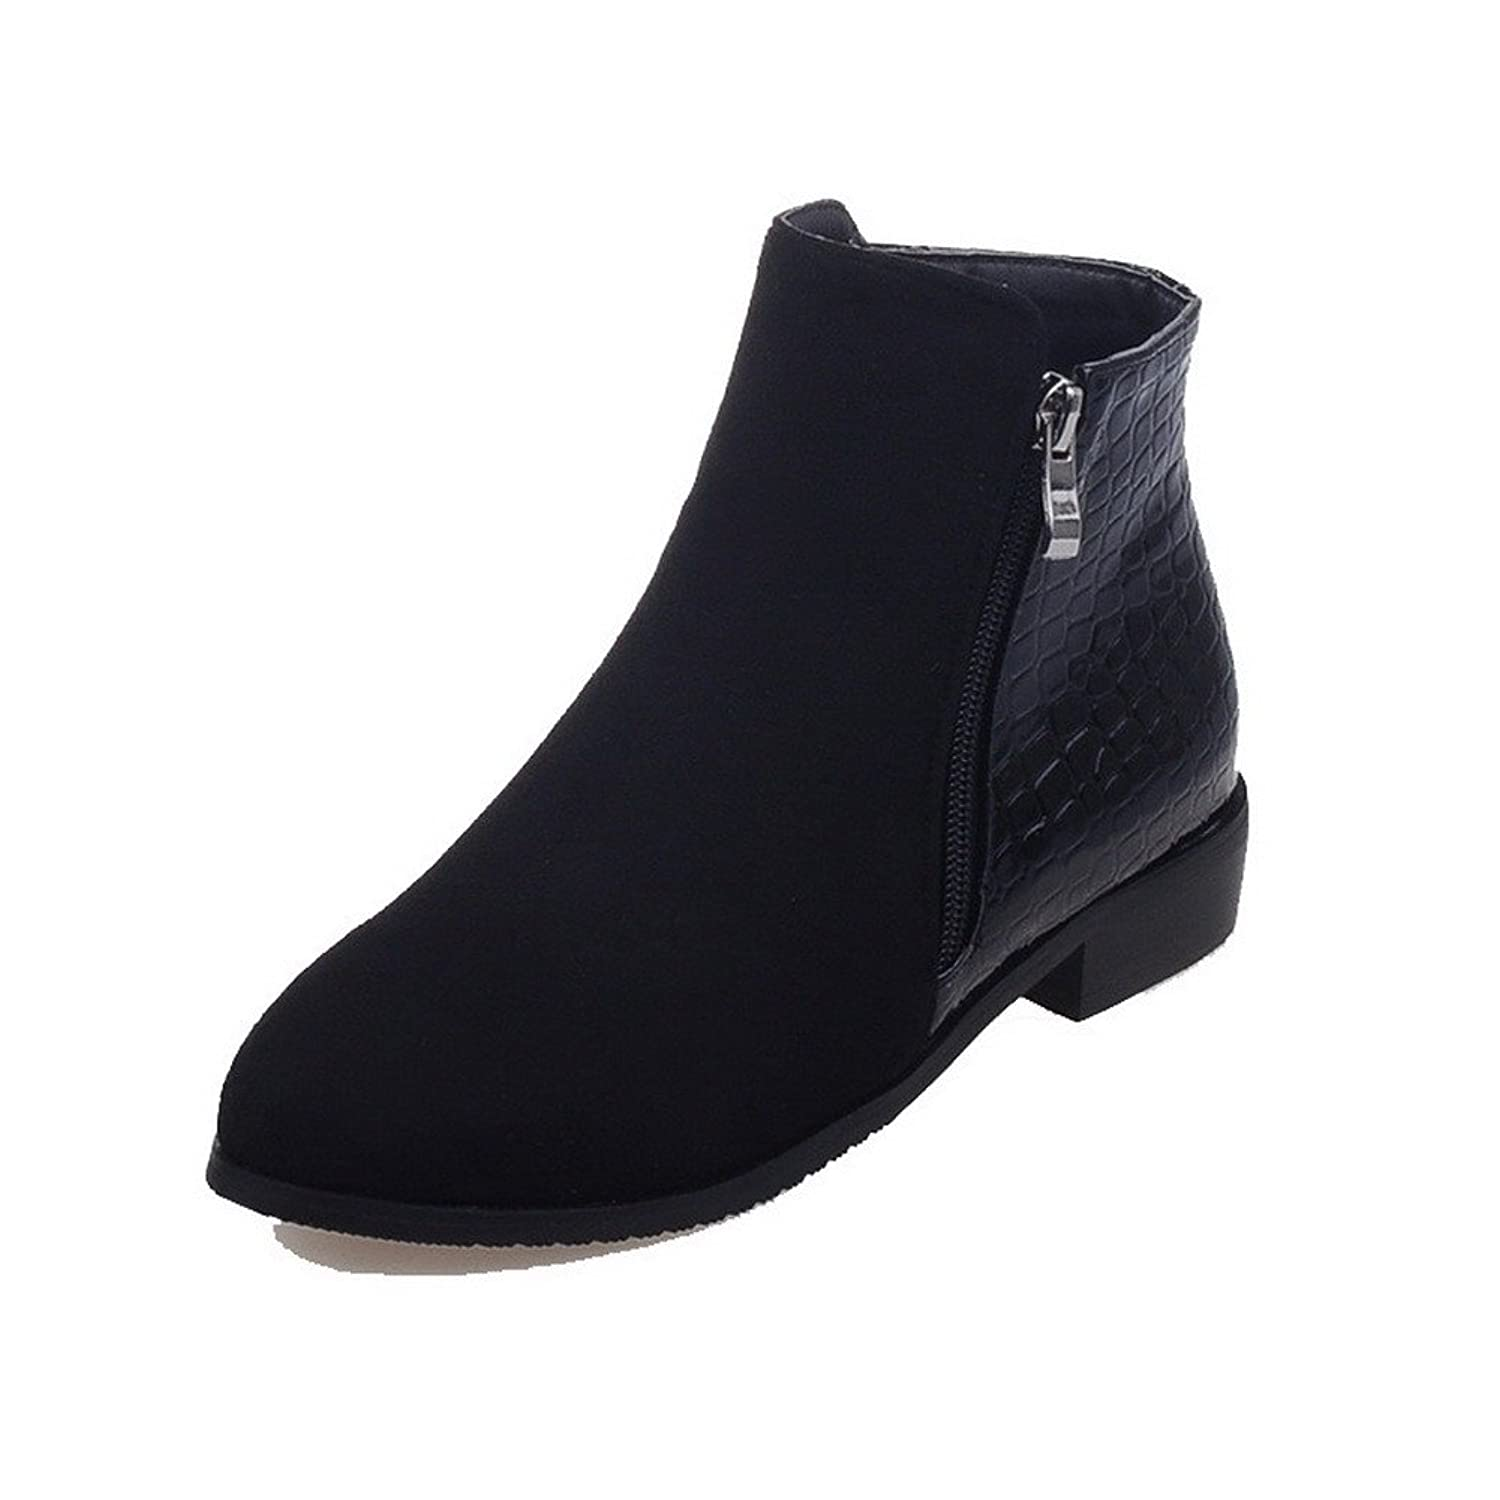 AmoonyFashion Women's Solid Low-Heels Round Closed Toe Blend Materials Zipper Boots